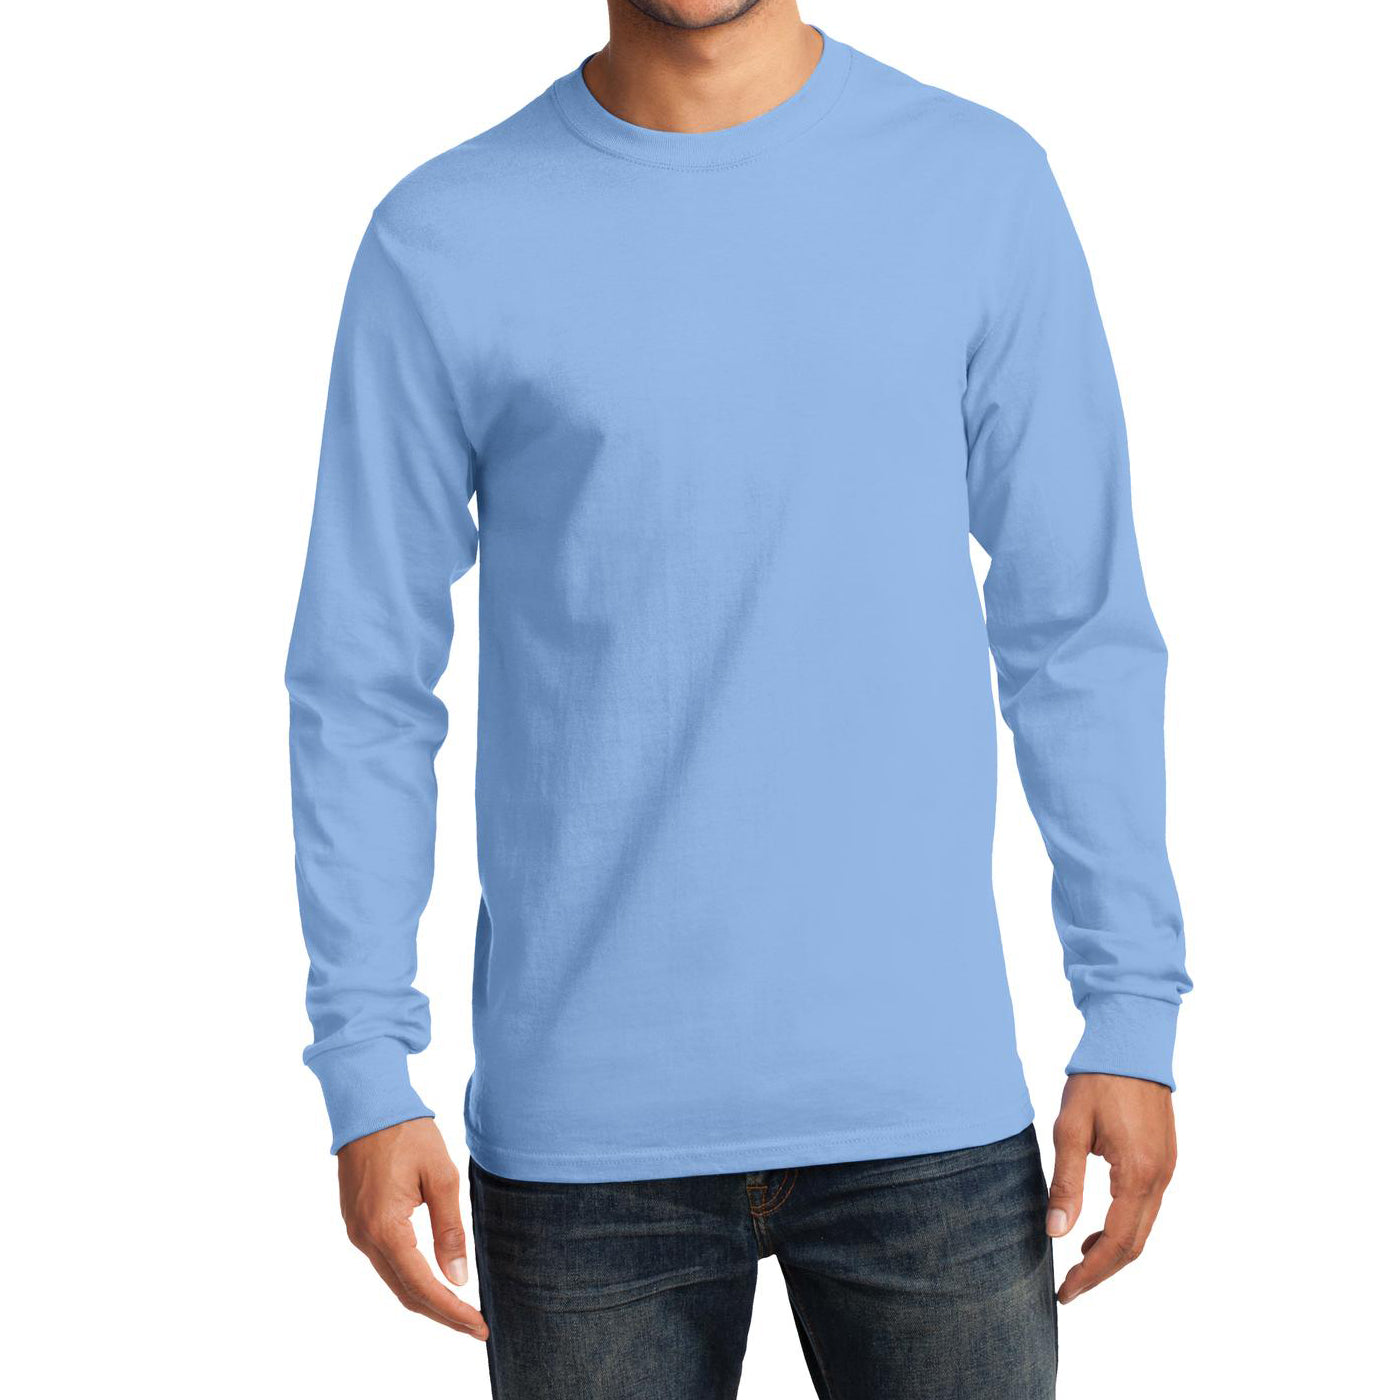 Men's Long Sleeve Essential Tee - Light Blue - Front